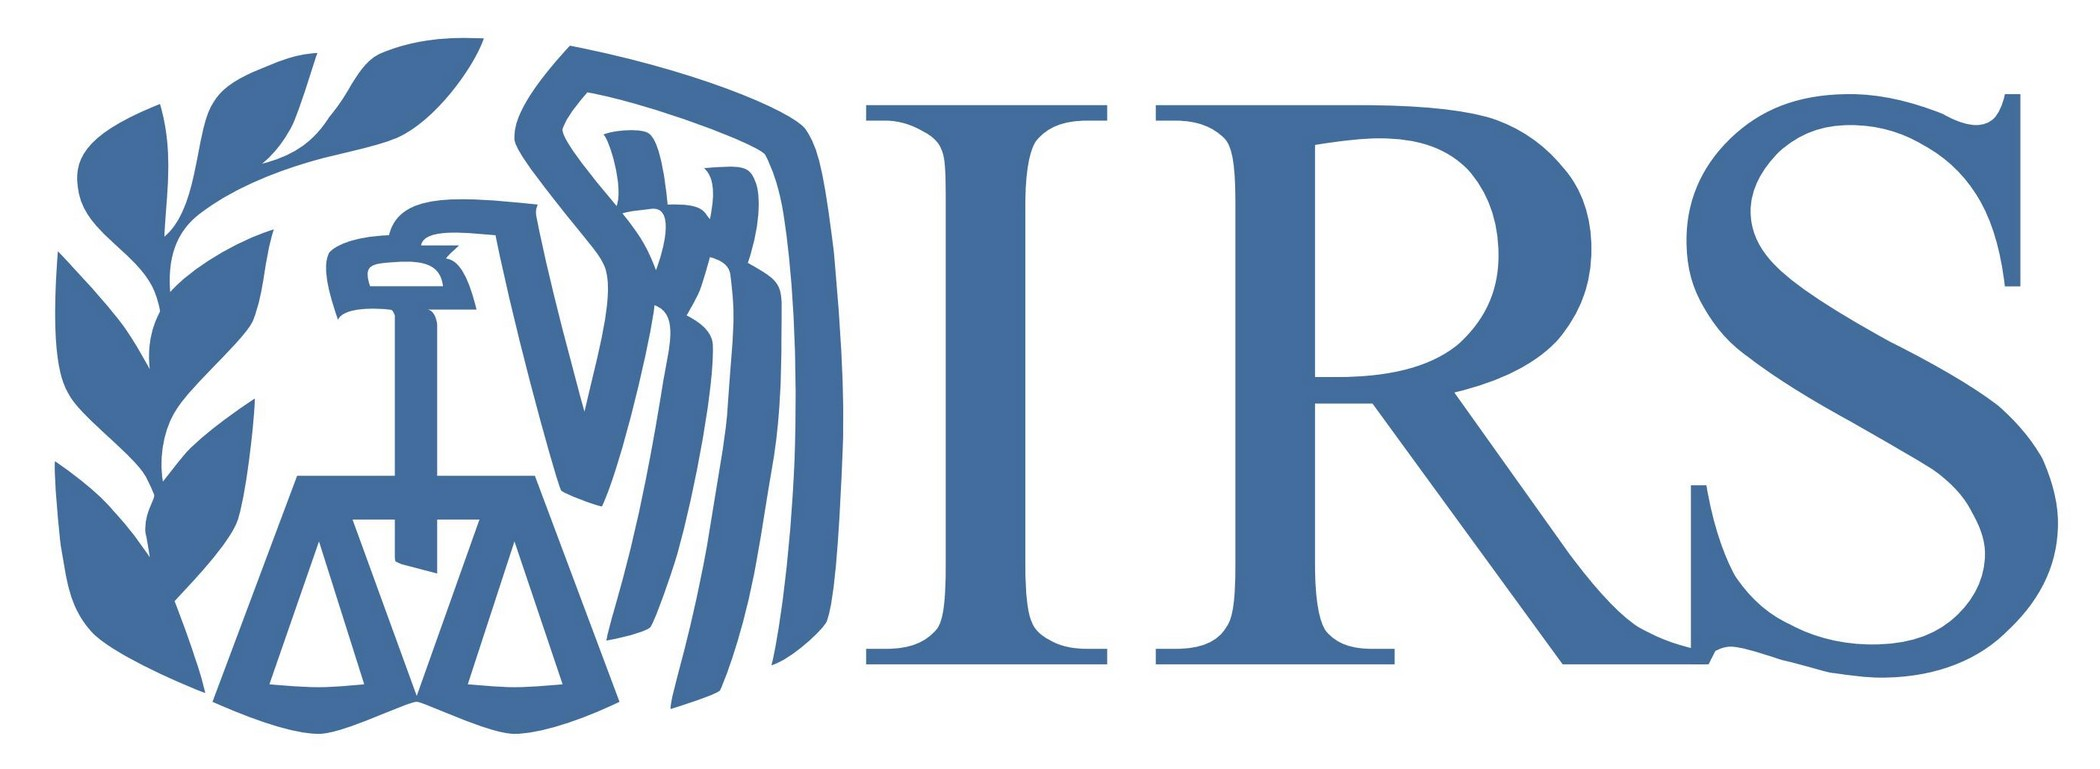 Tax forms dublin library for more information please use their website irs to access federal tax forms andor instruction materials falaconquin